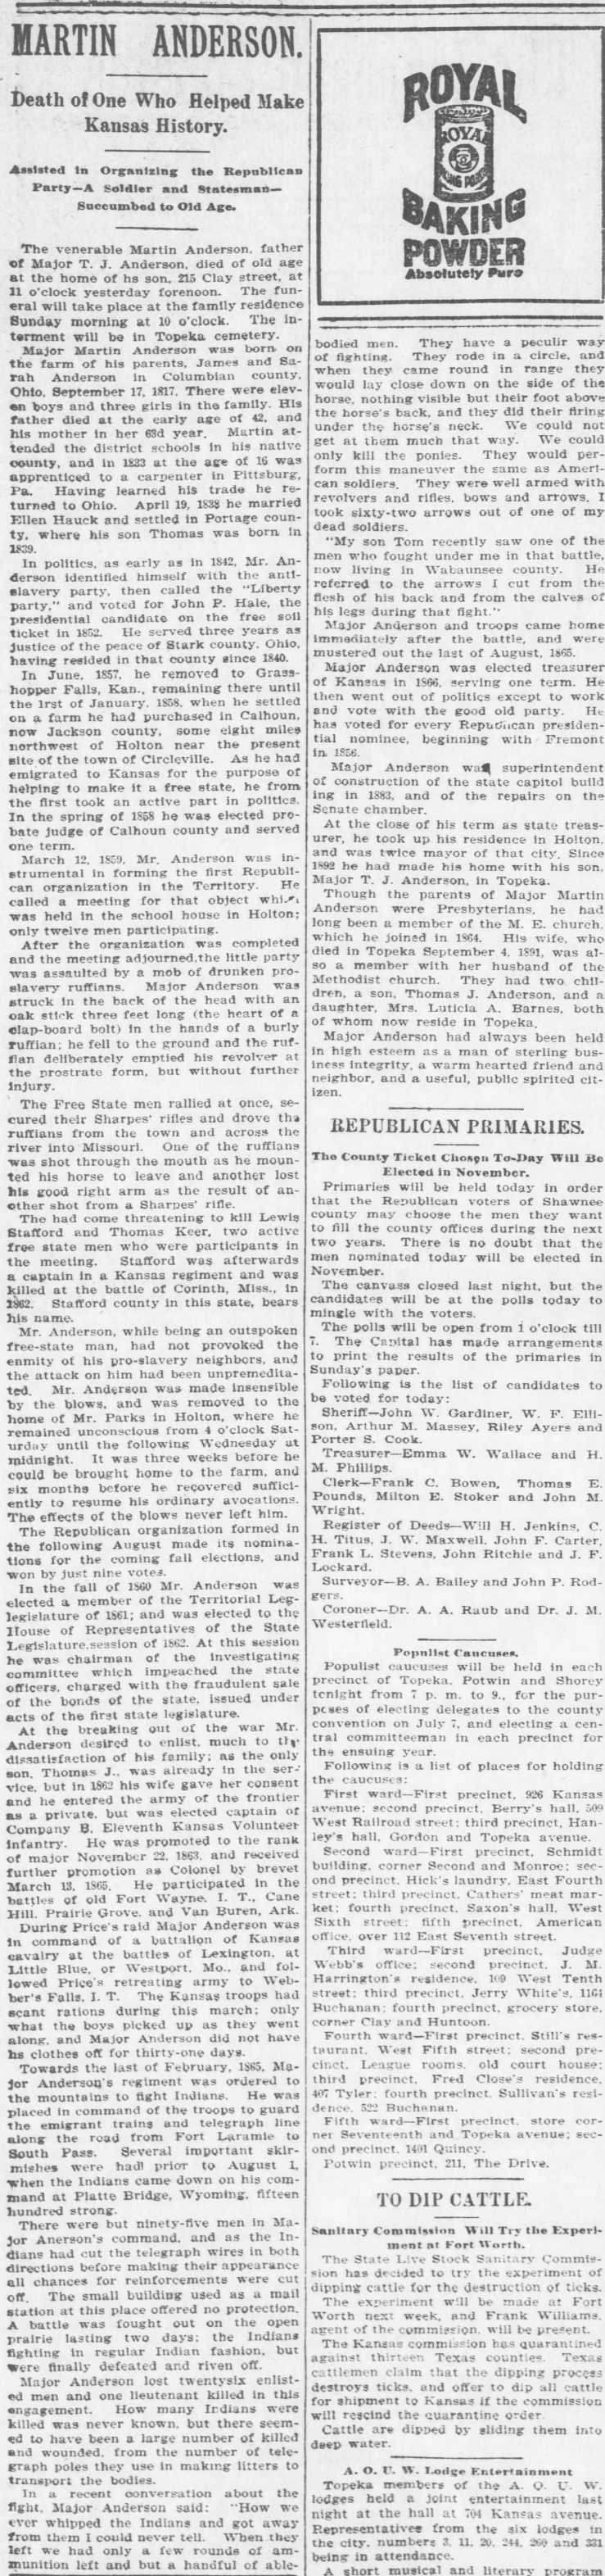 Martin Anderson obituary, The_Topeka_Daily_Capital_Sat__Jul_10__1897_